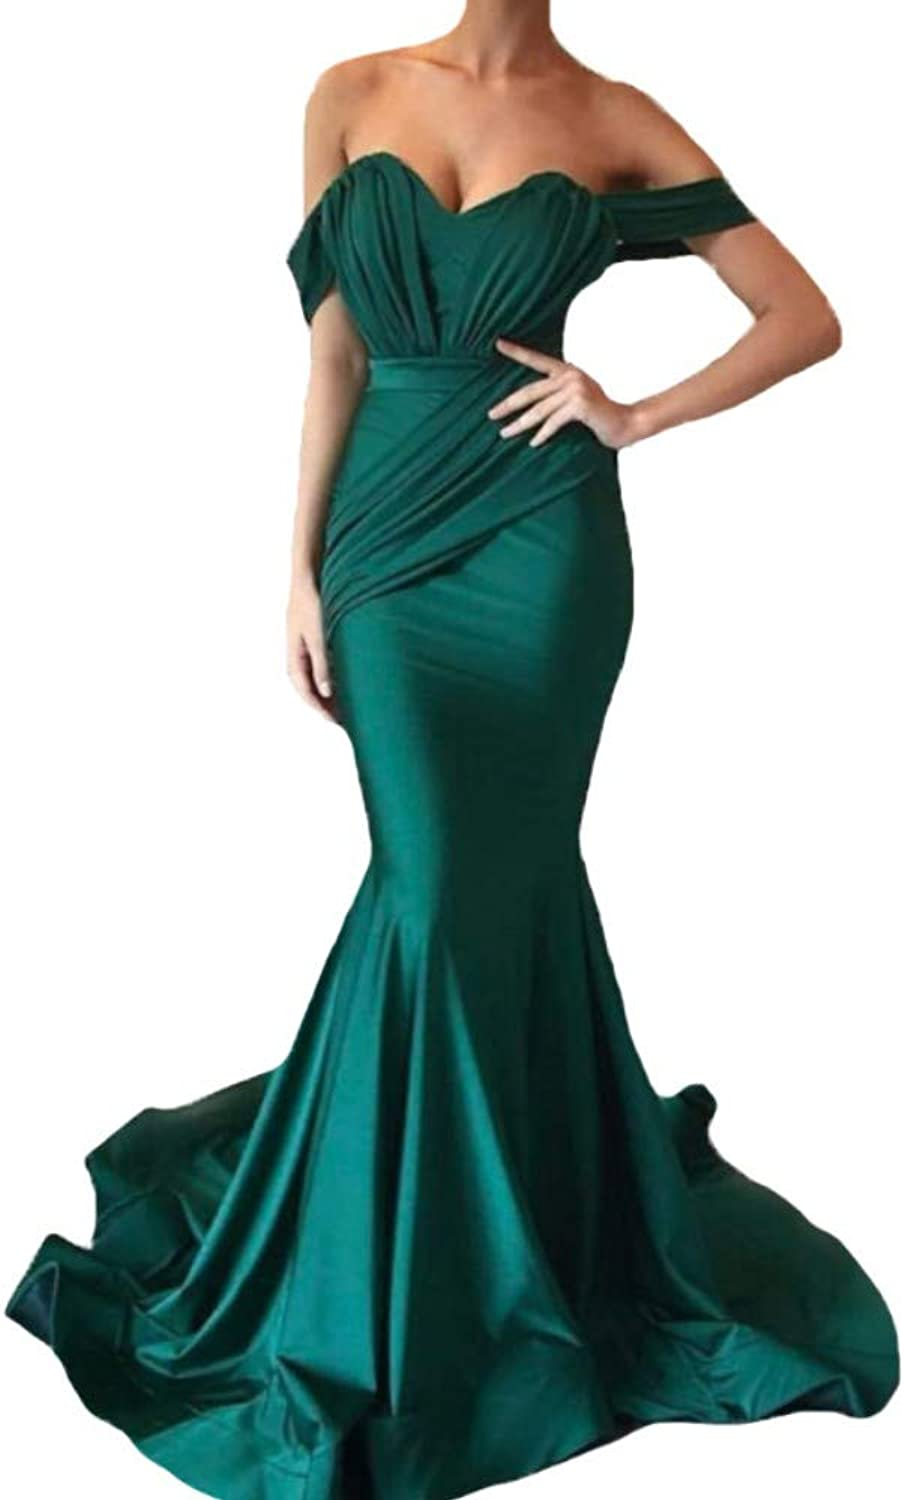 Liaoye Off Shoulder Prom Dresses Long for Women 2018 Mermaid Sexy Evening Dresses Formal Gowns